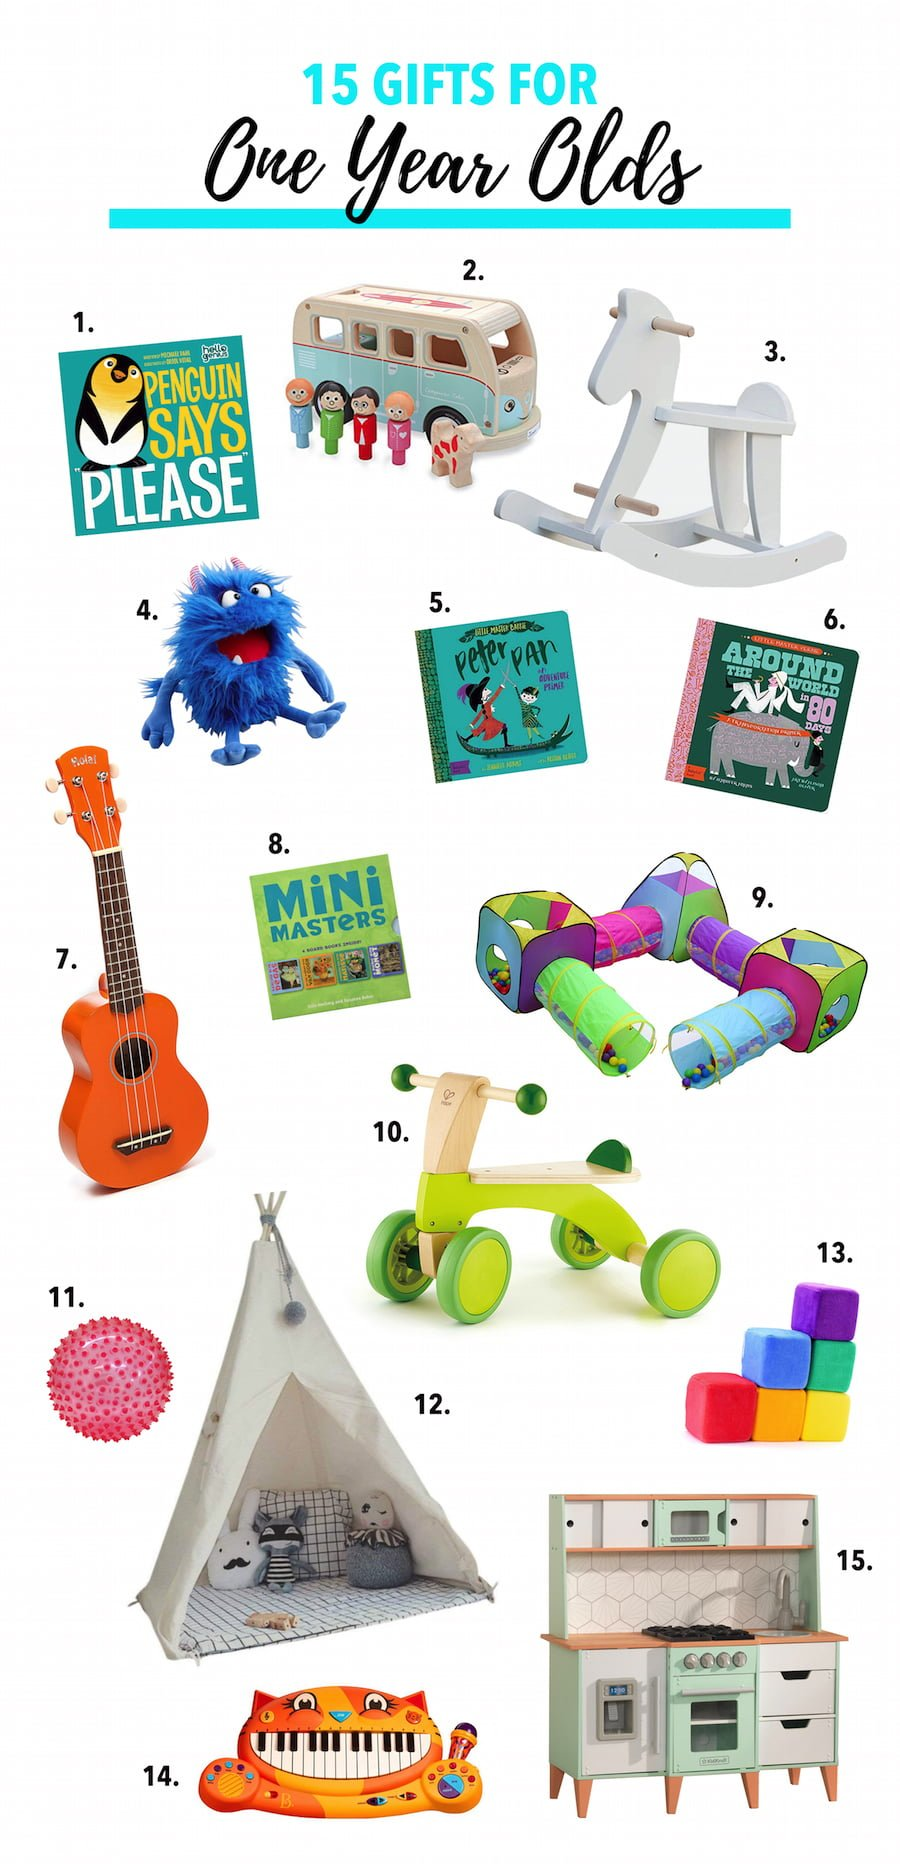 15 Gifts for One-Year-Olds